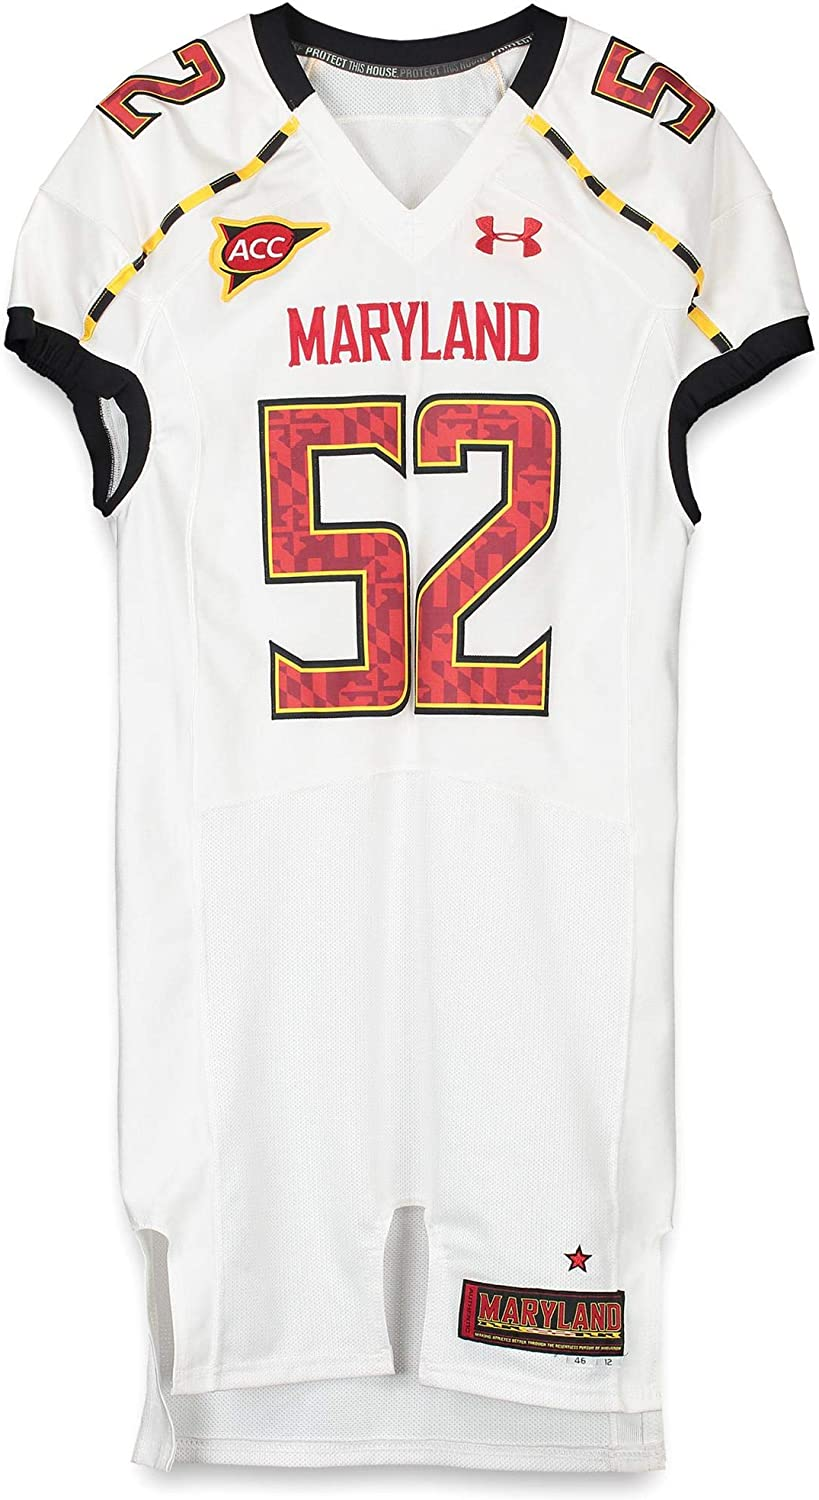 Maryland Terrapins Team-Issued #52 White Jersey with ACC Patch - Size 46 - Fanatics Authentic Certified